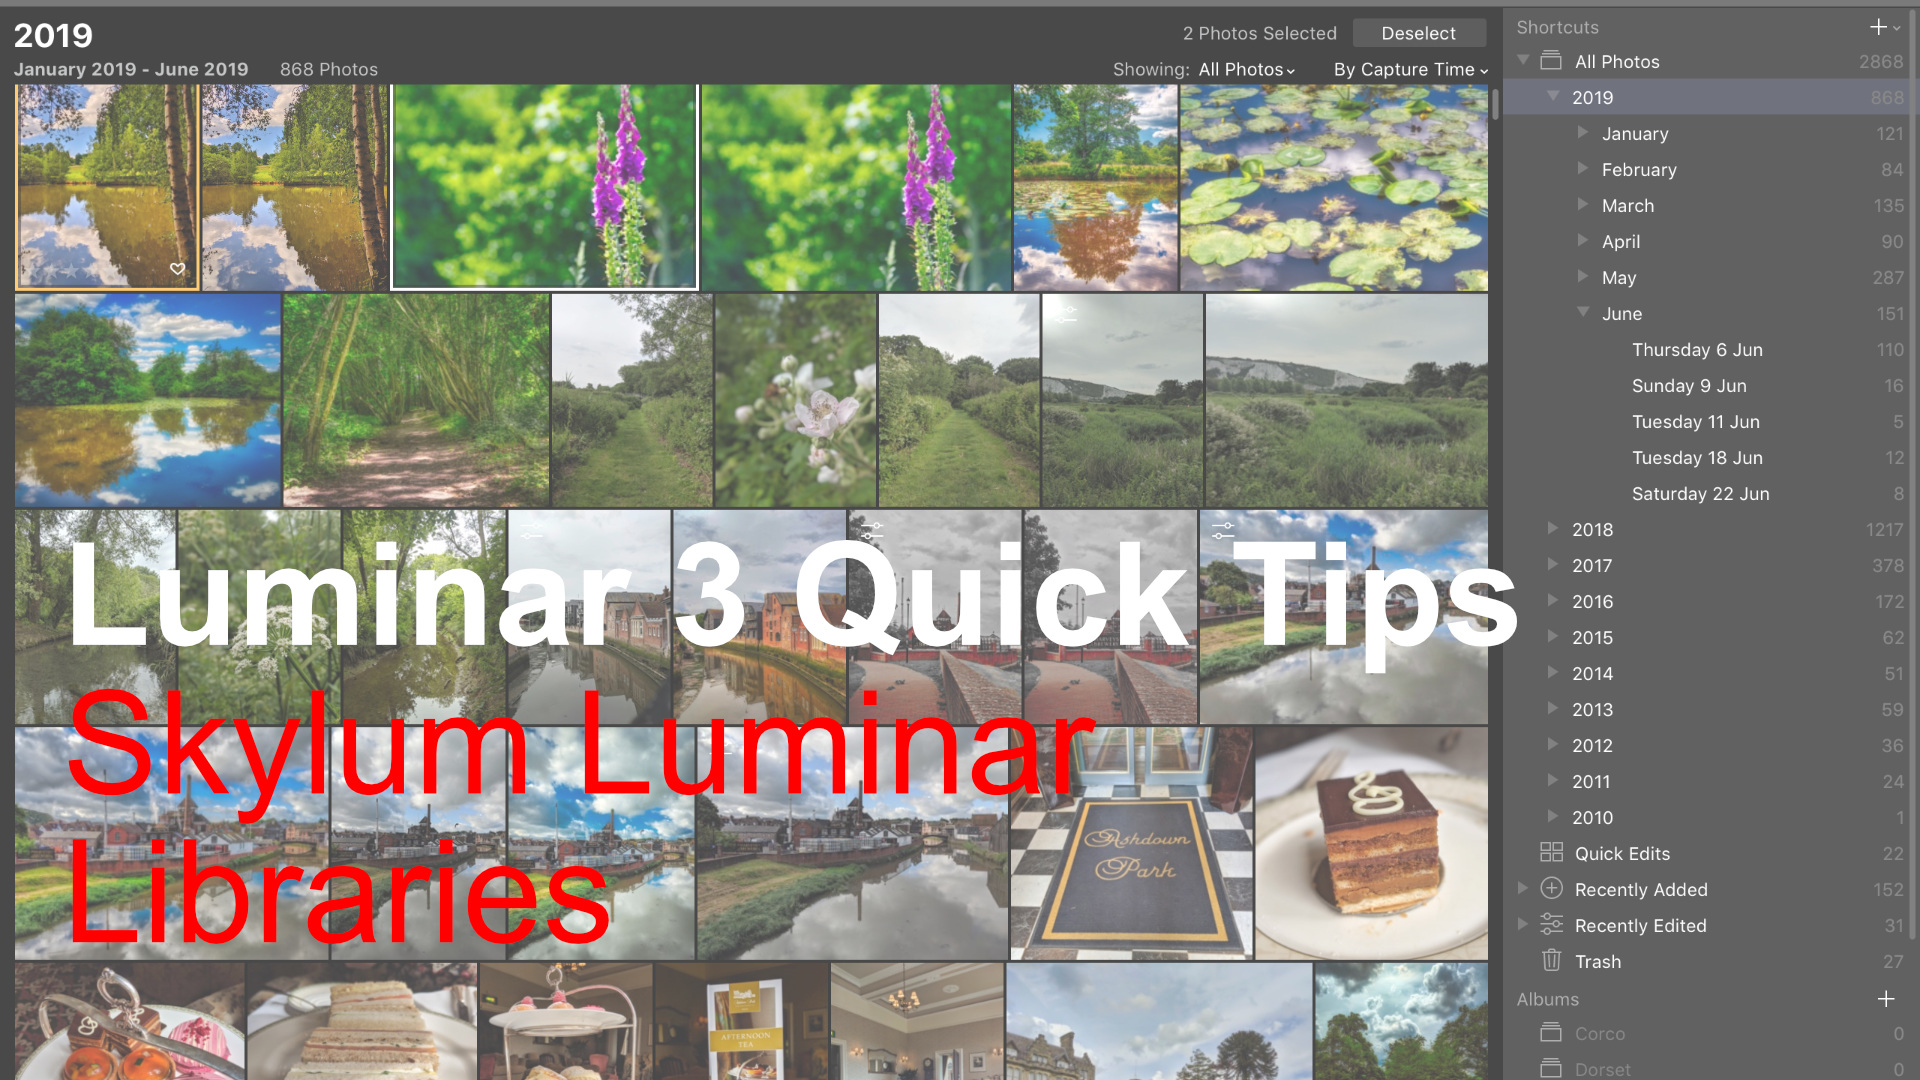 Luminar 3 Quick Tips | Skylum Luminar Libraries